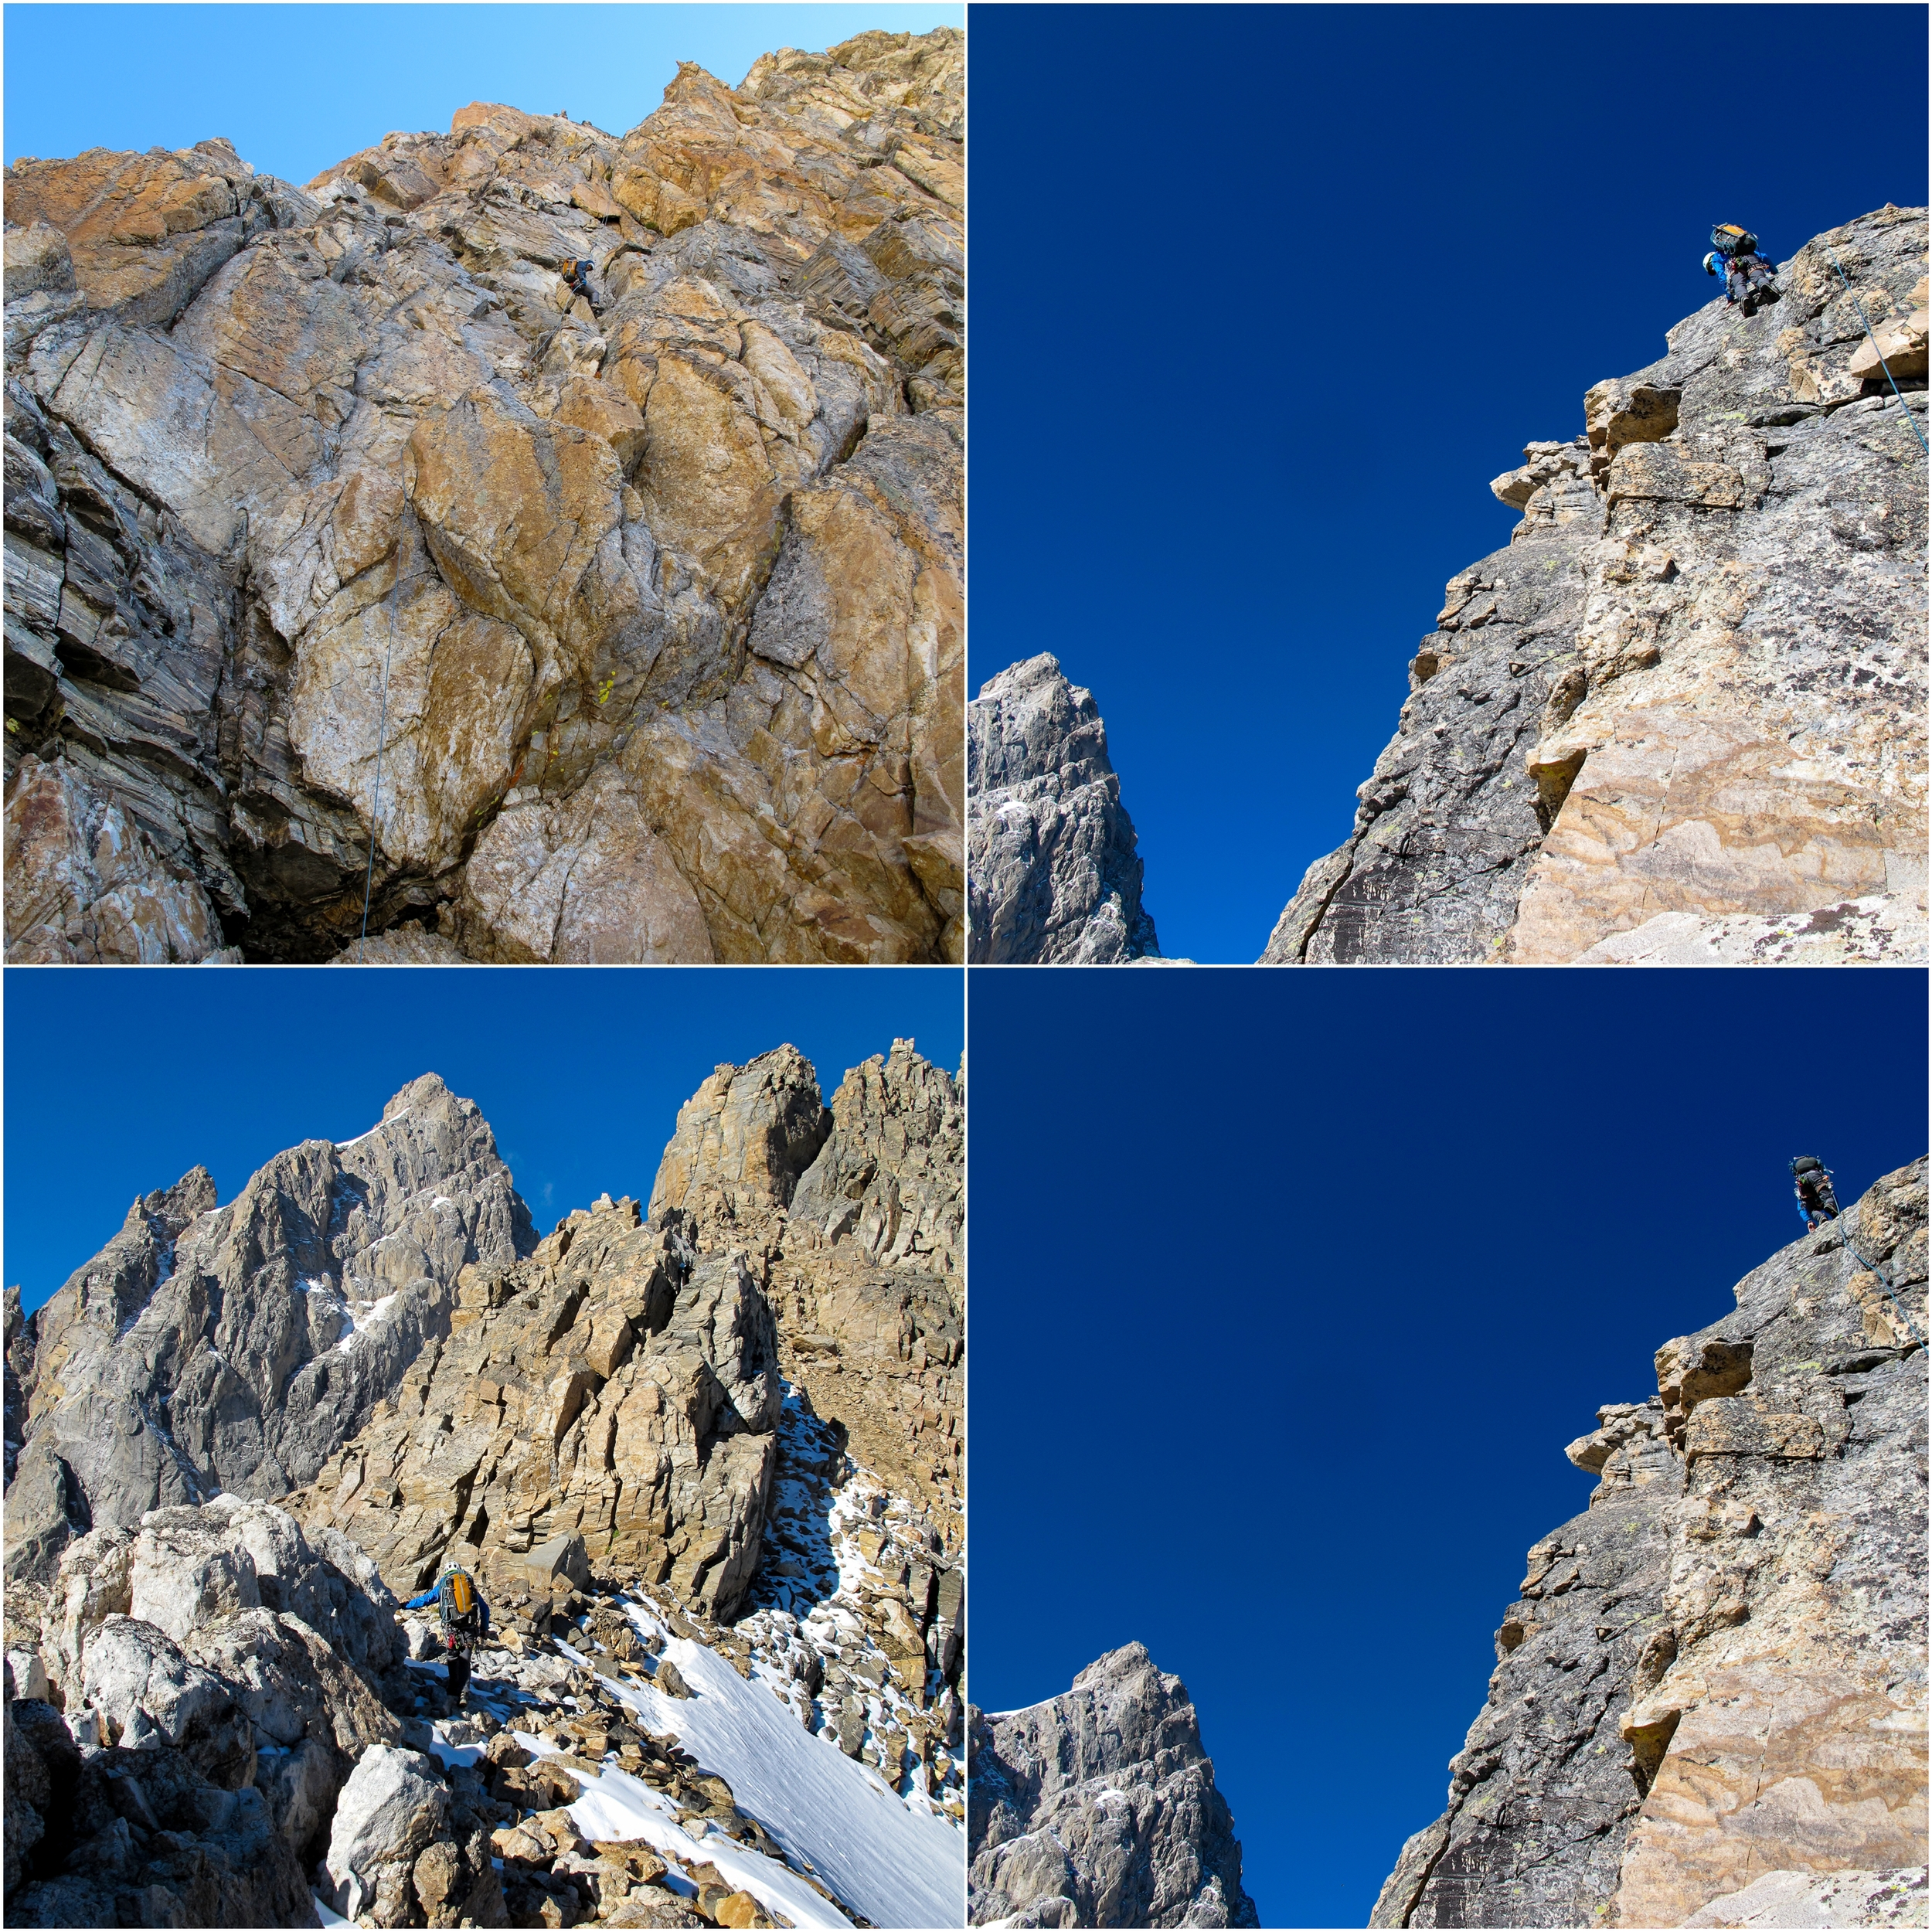 (Top Left) Rappels off of Mt. Teewinot. (Top & Bottom Right) Climbing Mt. Owen. (Bottom Left) Coven Col with the Grand on the left.